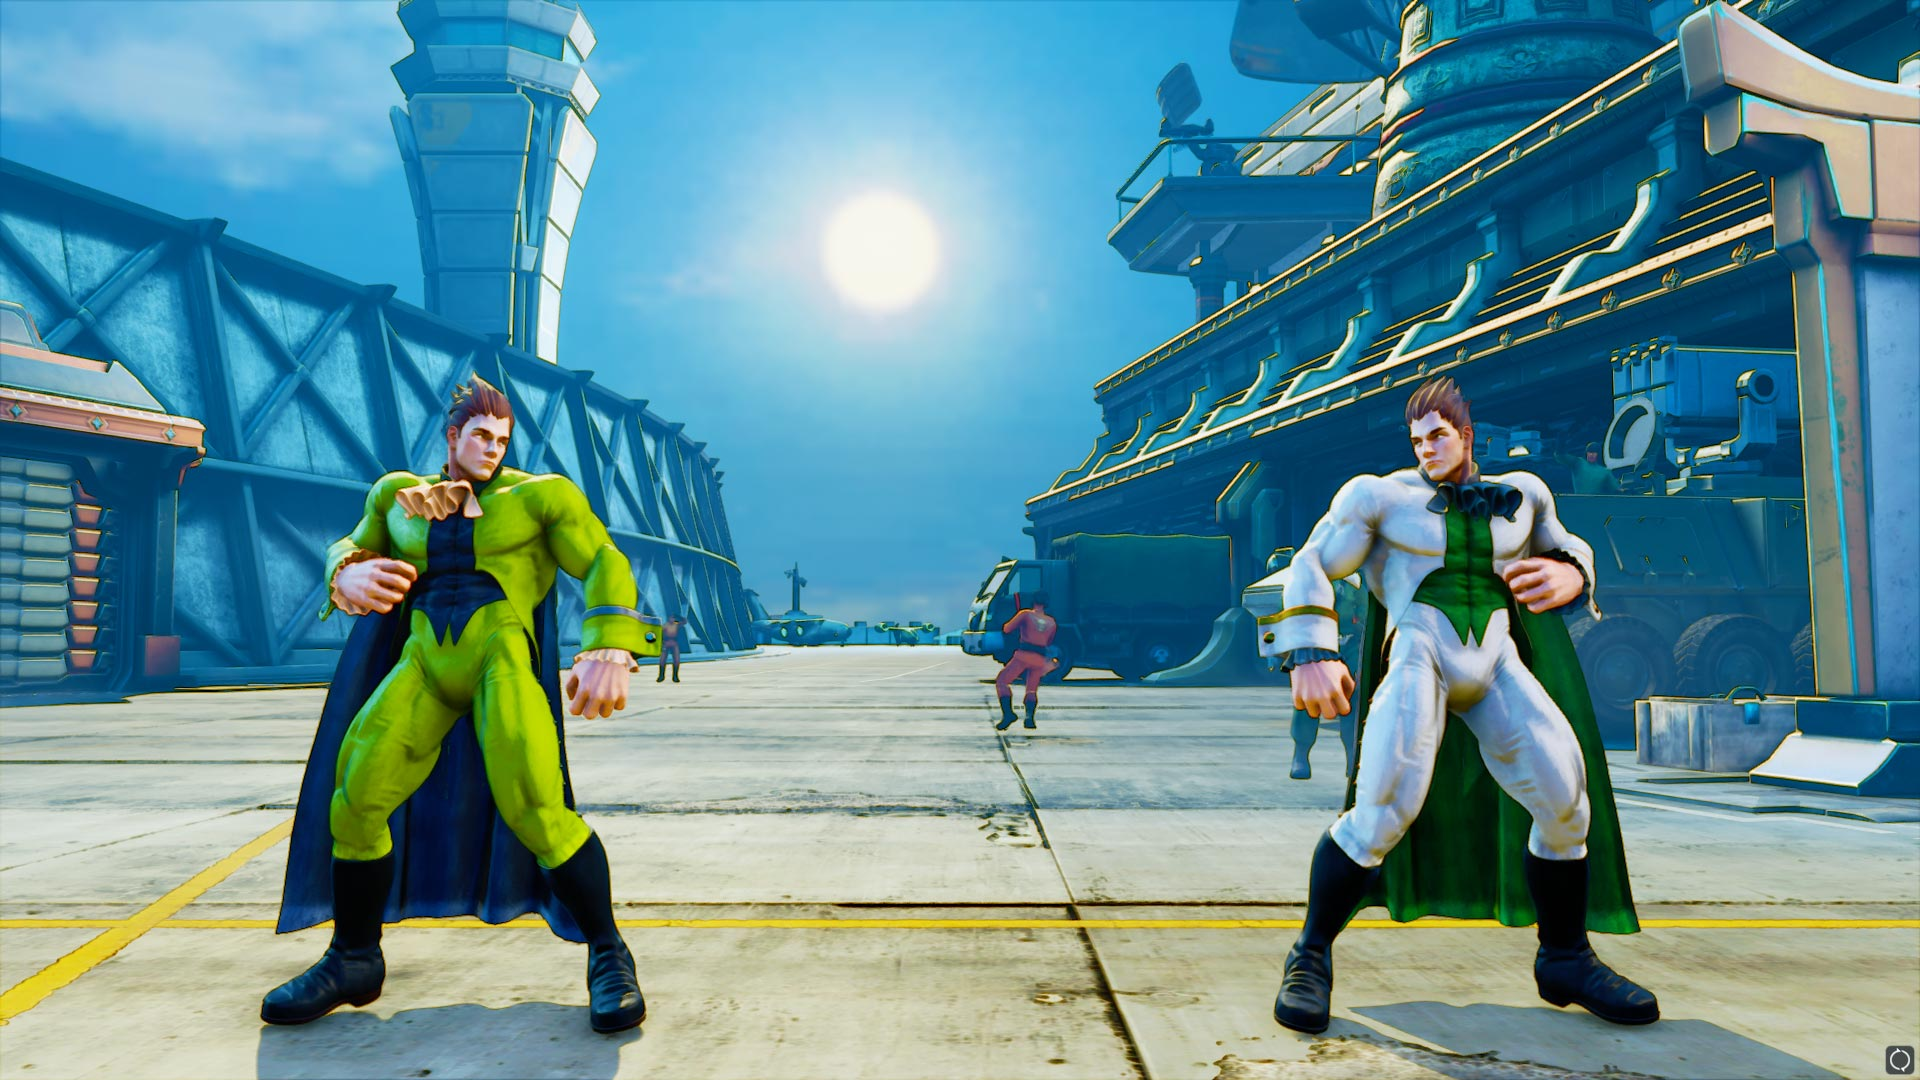 New Darkstalkers costumes in Street Fighter 5 15 out of 17 image gallery